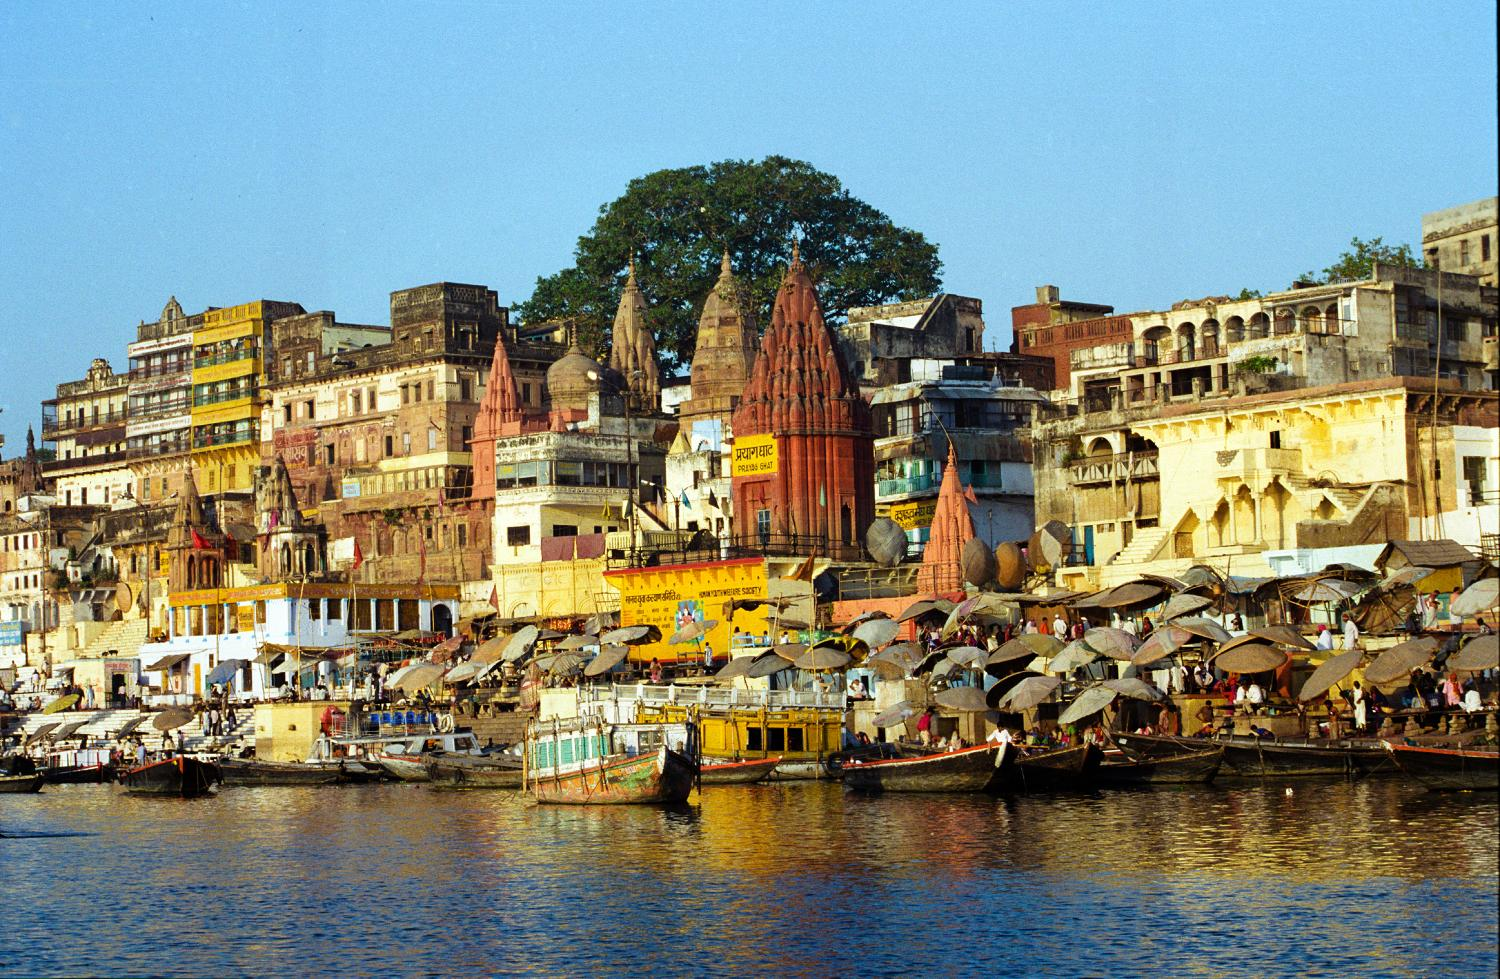 Varanasi, Uttar Pradesh, India, on the River Ganges.  Varanasi is one of the world's oldest continuously inhabited cities.  Varanasi is often called the religious capital of India.  Hindu pilgrims travel to Varanasi in order to cleanse their spirits in the River Ganges.